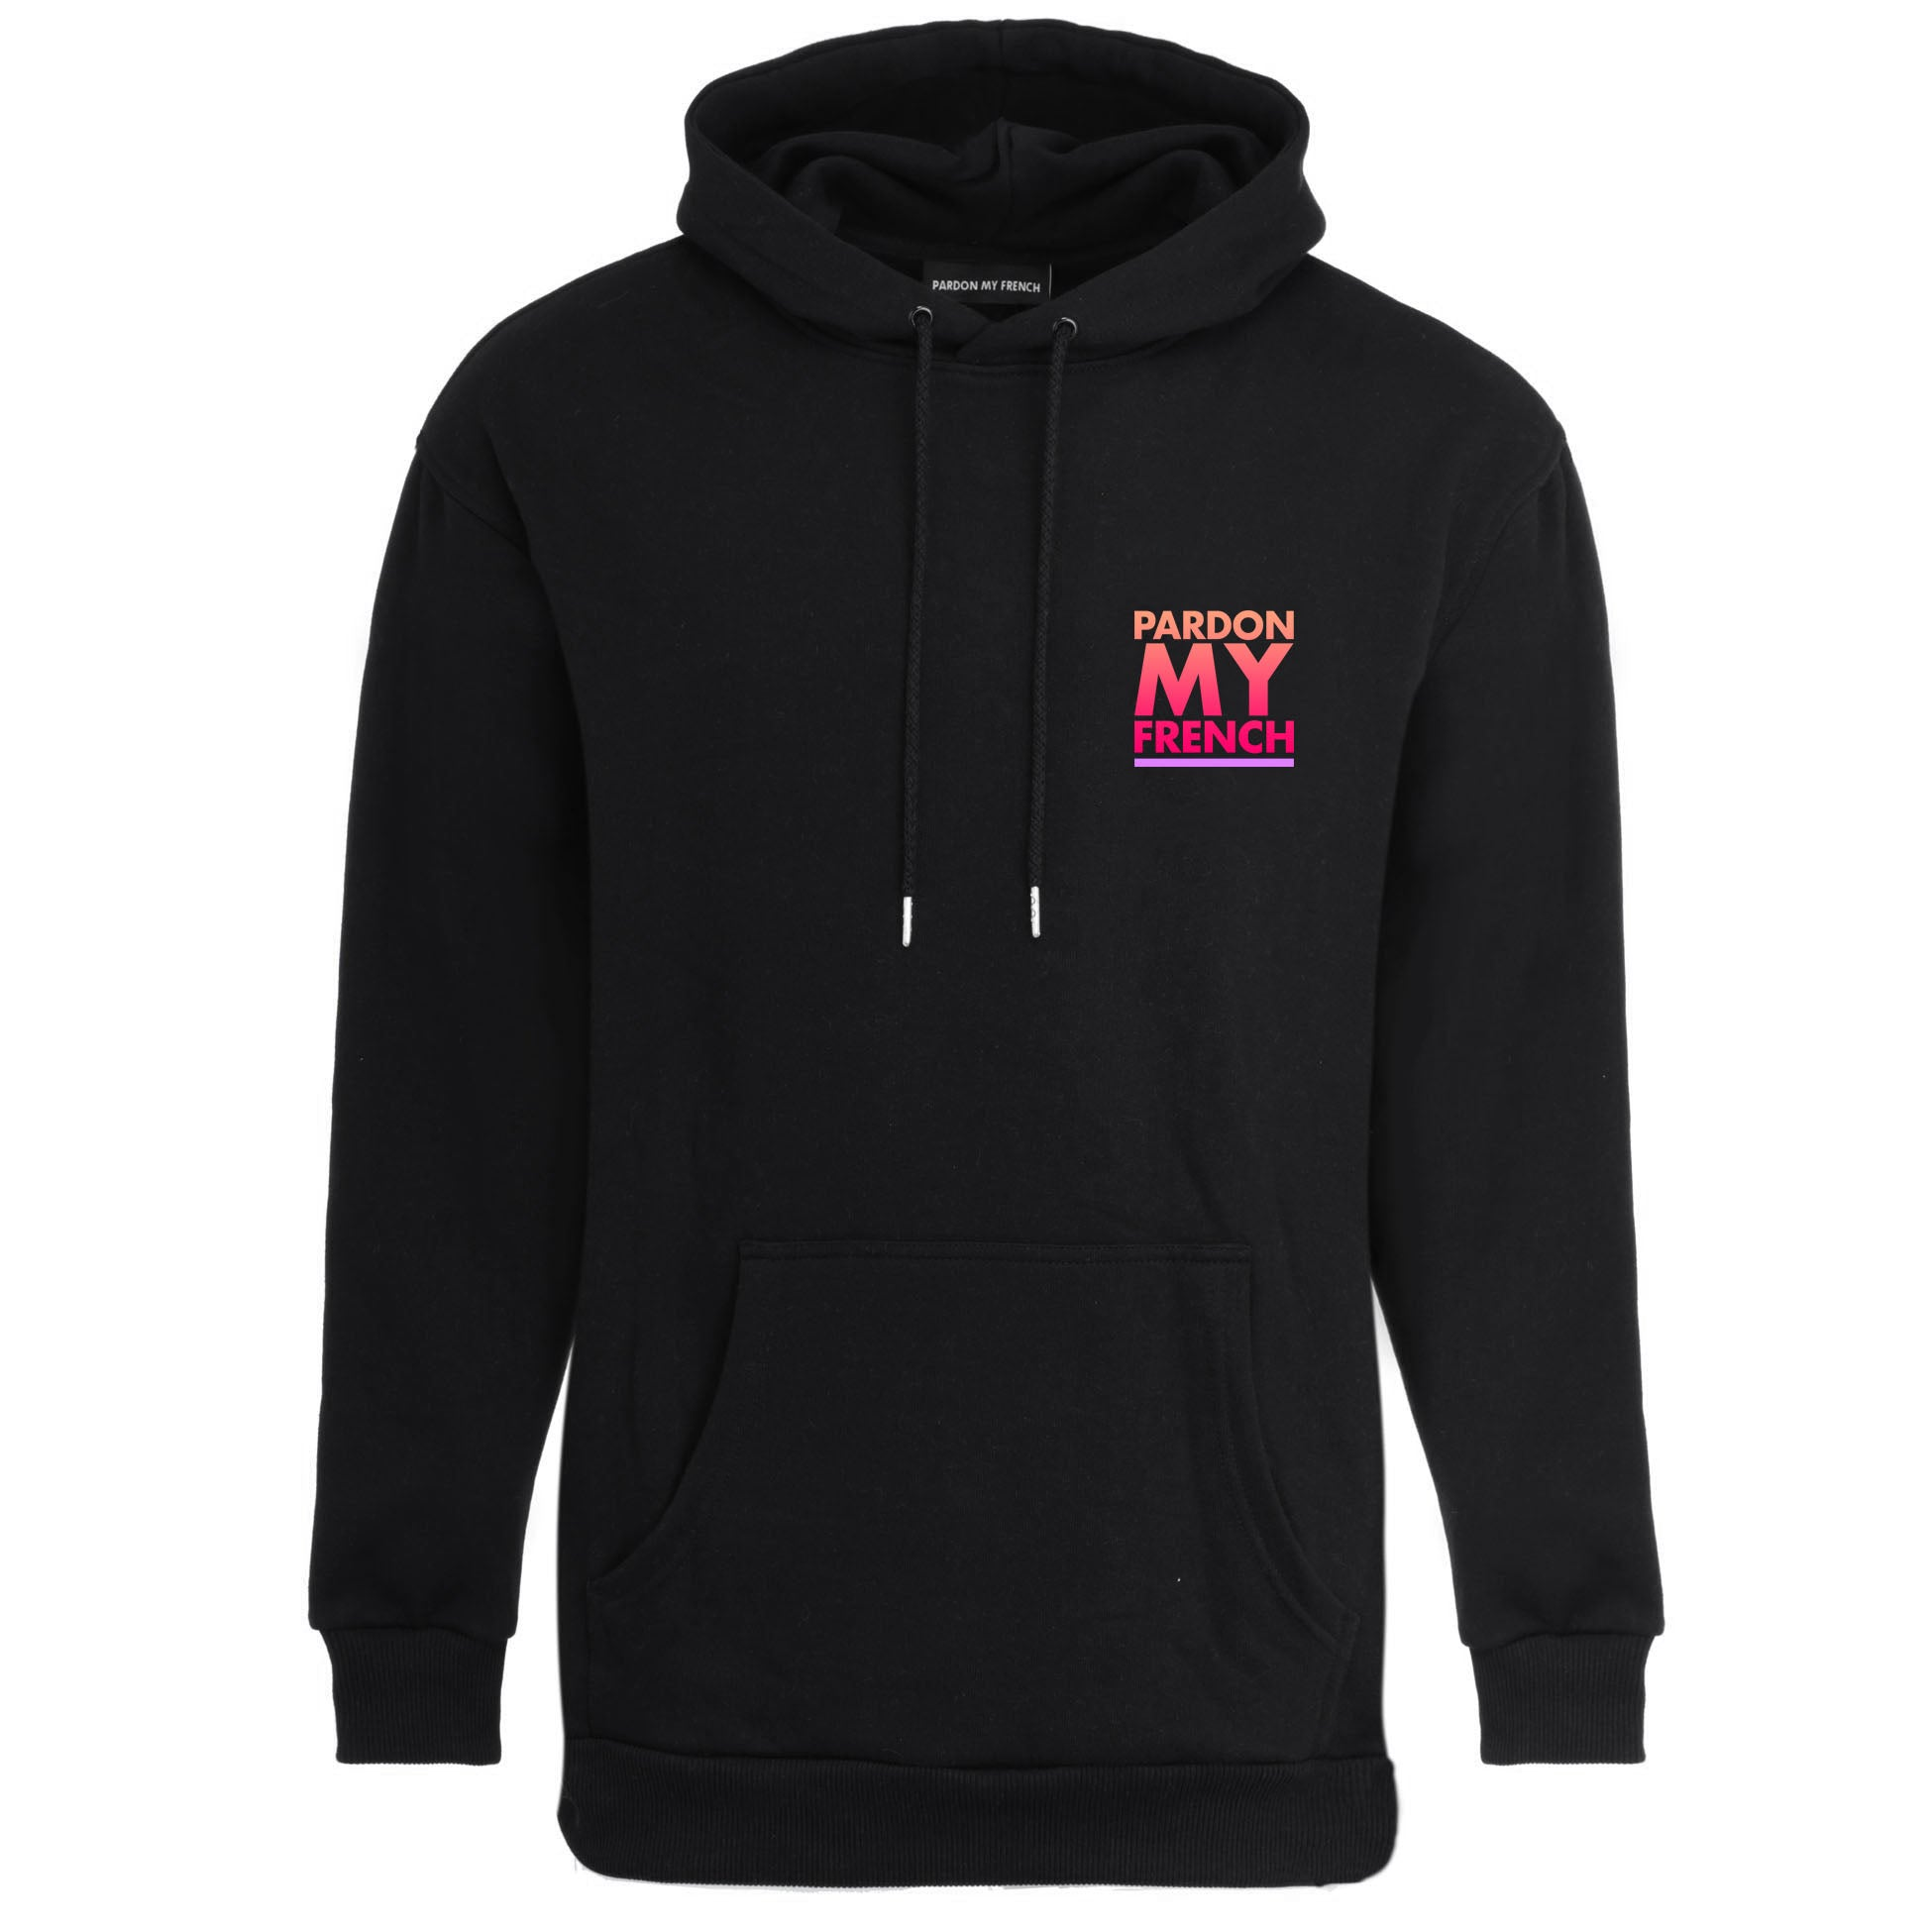 PARDON MY FRENCH SUNSET EDITION BLACK HOODIE